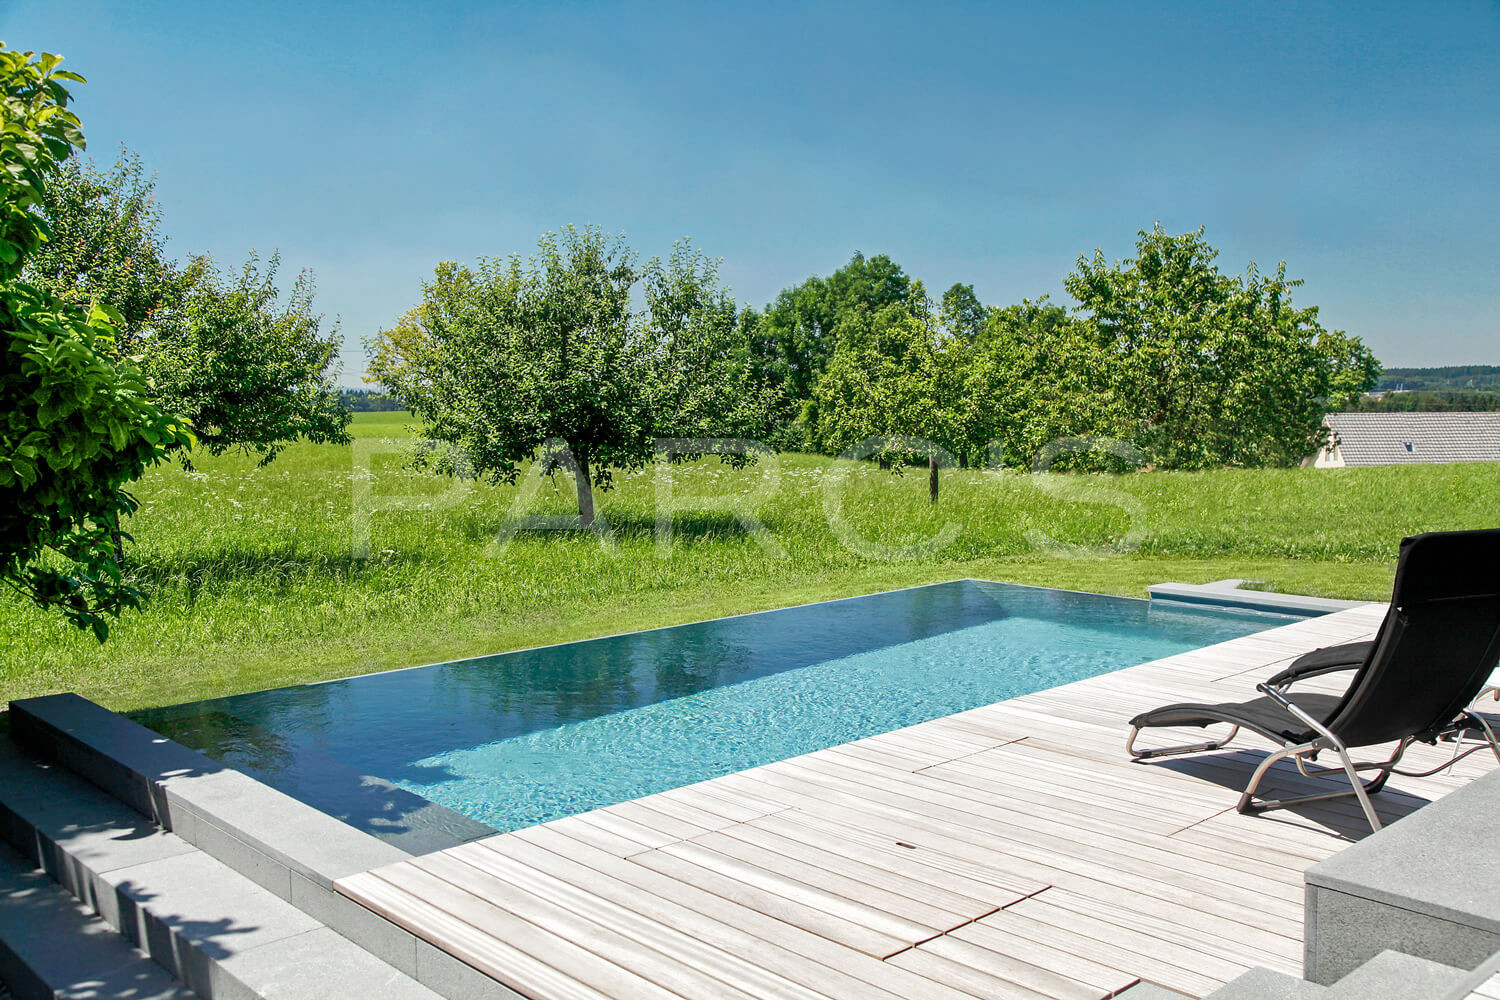 Fesselnd Infinity Swimming Pool Garten 1